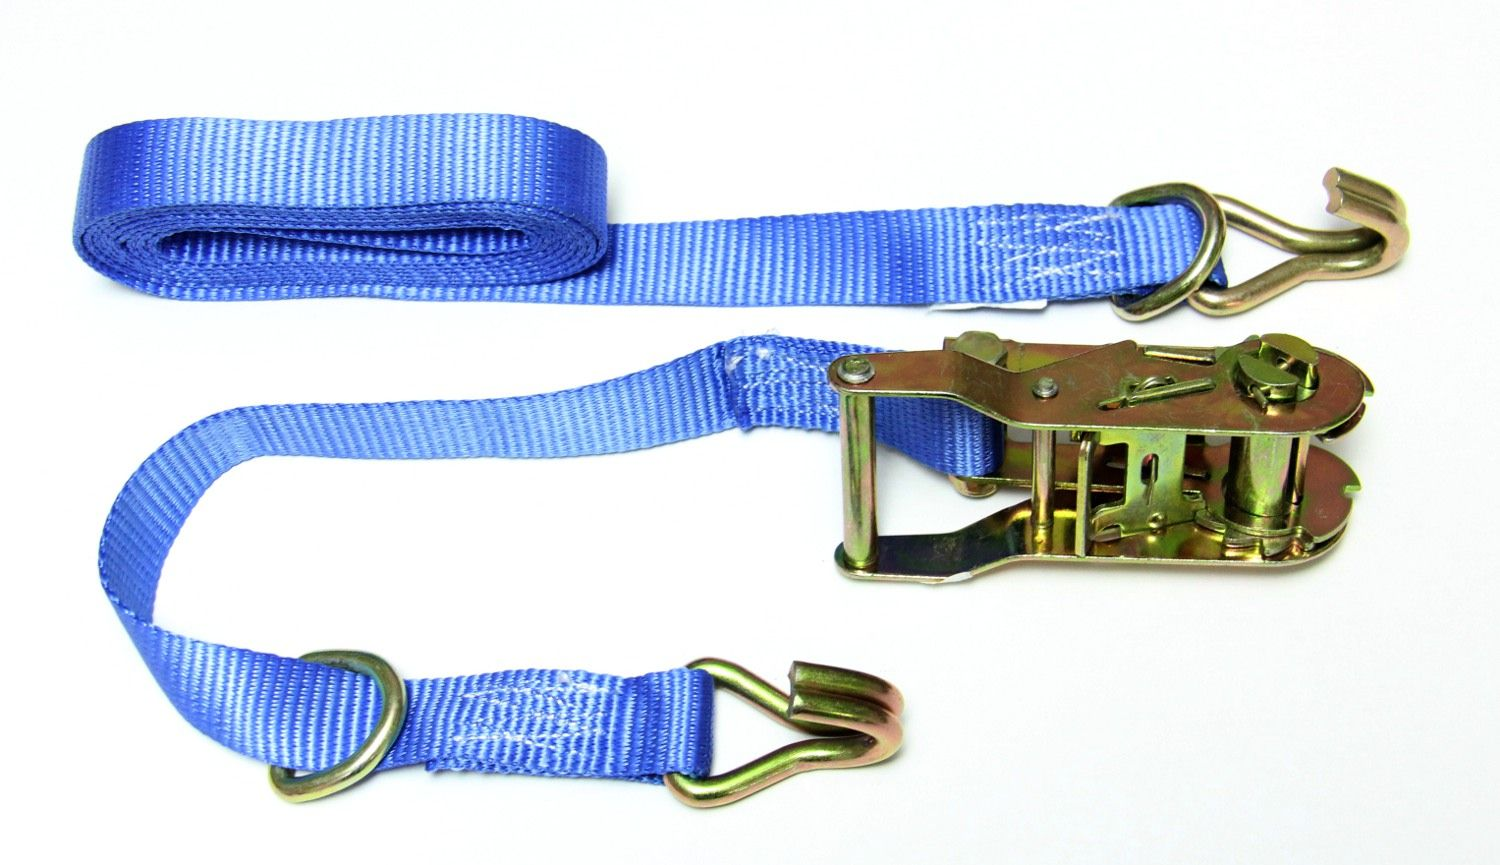 Blue ratchet strap (tie down strap)